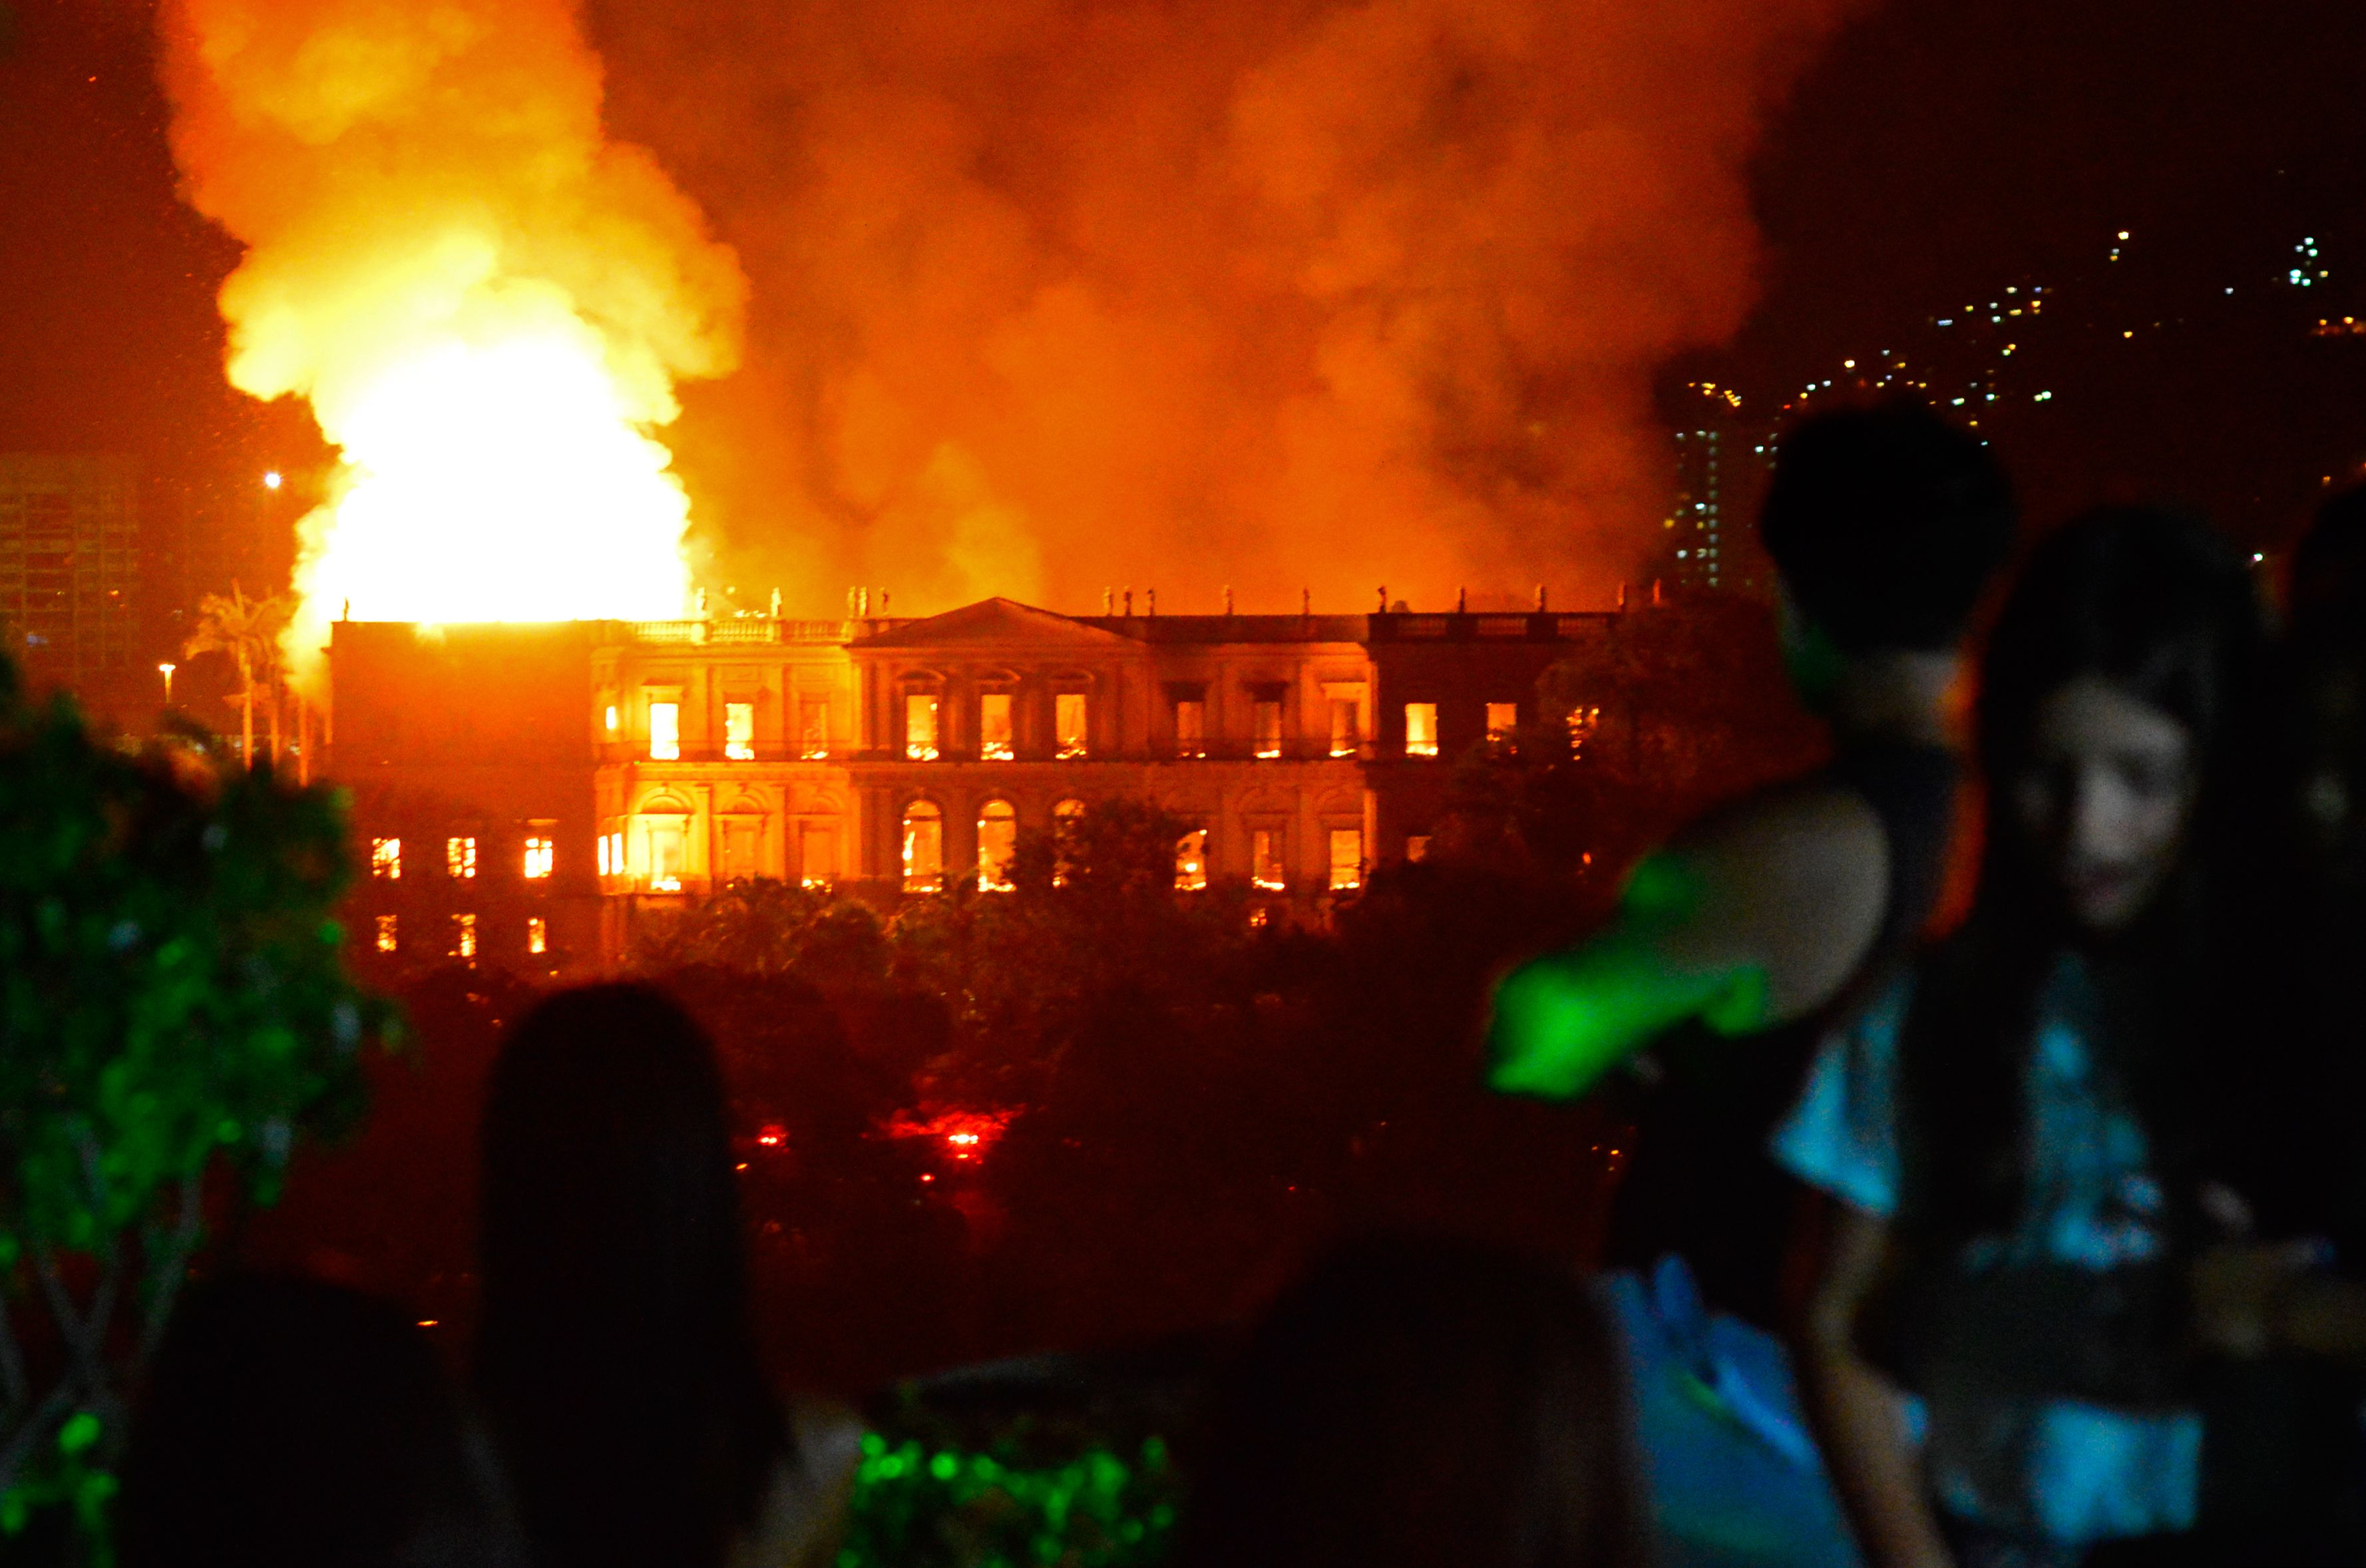 People watch as a massive fire engulfs the National Museum in Rio de Janeiro in Brazil on Sept. 2, 2018.